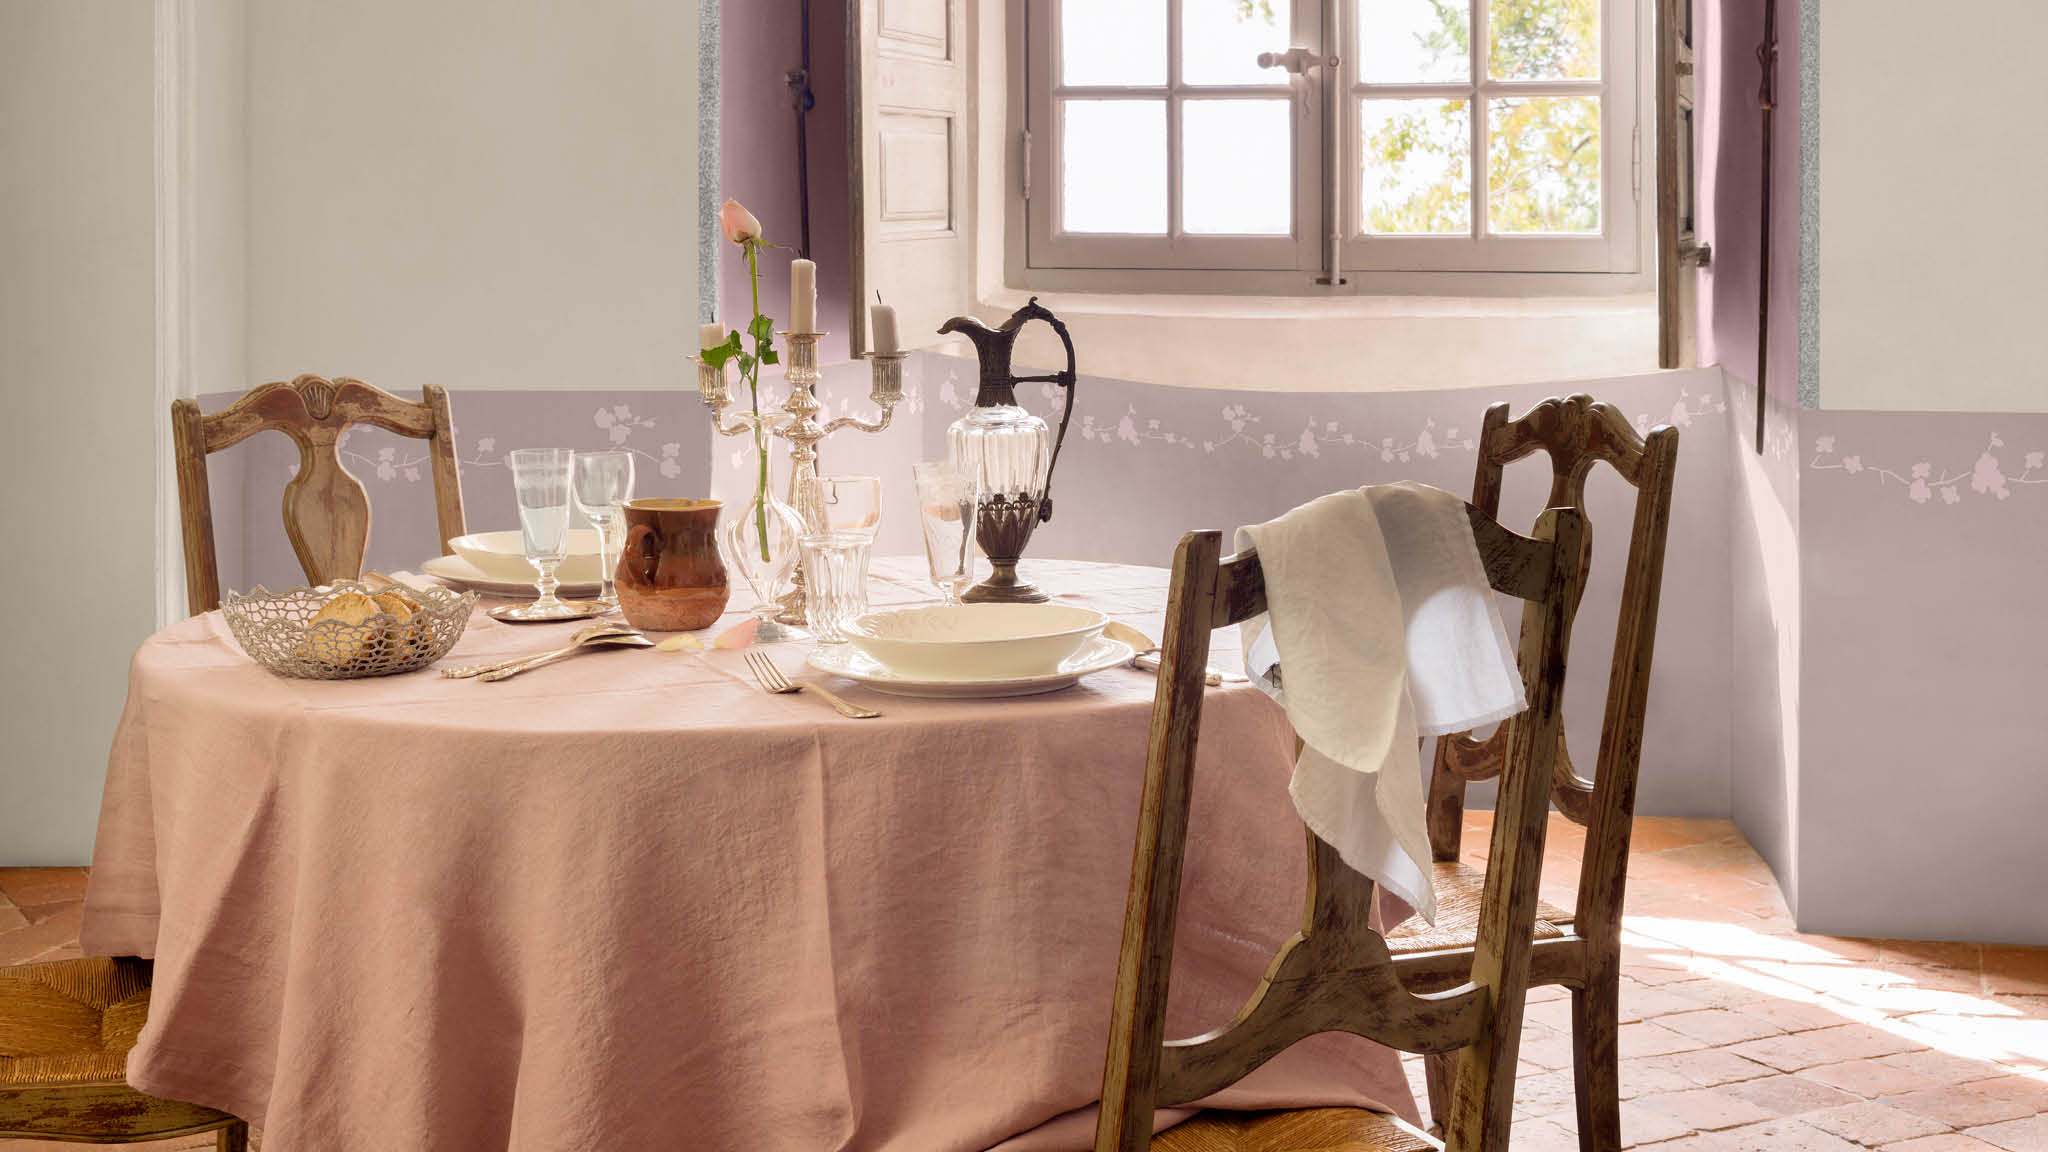 For a traditional dining room that exudes prettiness, look to the romance of the French countryside for inspiration. Pair crisp, classic greys with chalky, muted pastels like violet and lilac.